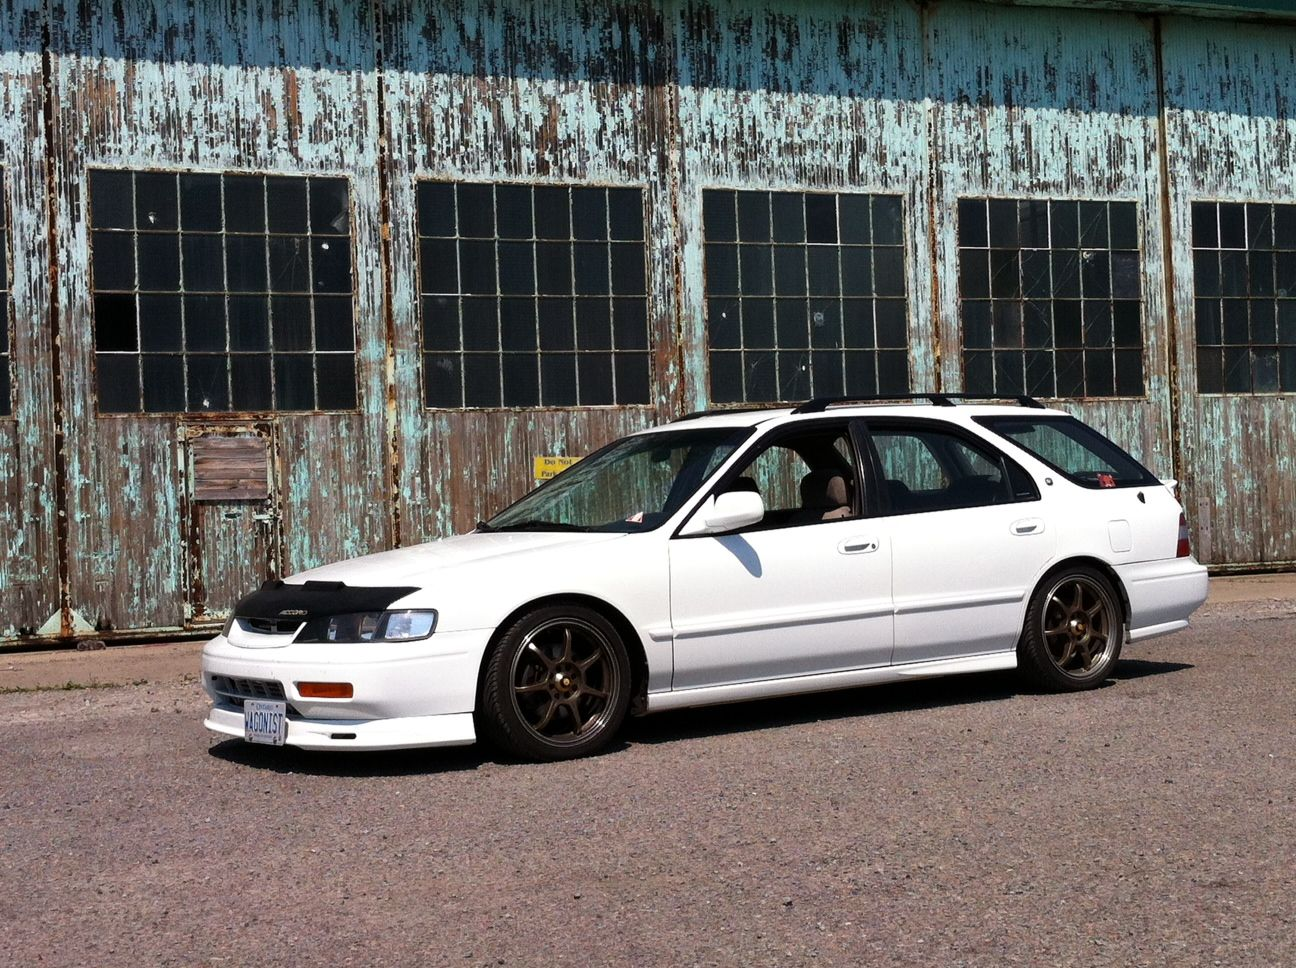 My 306whp Honda Accord Wagon